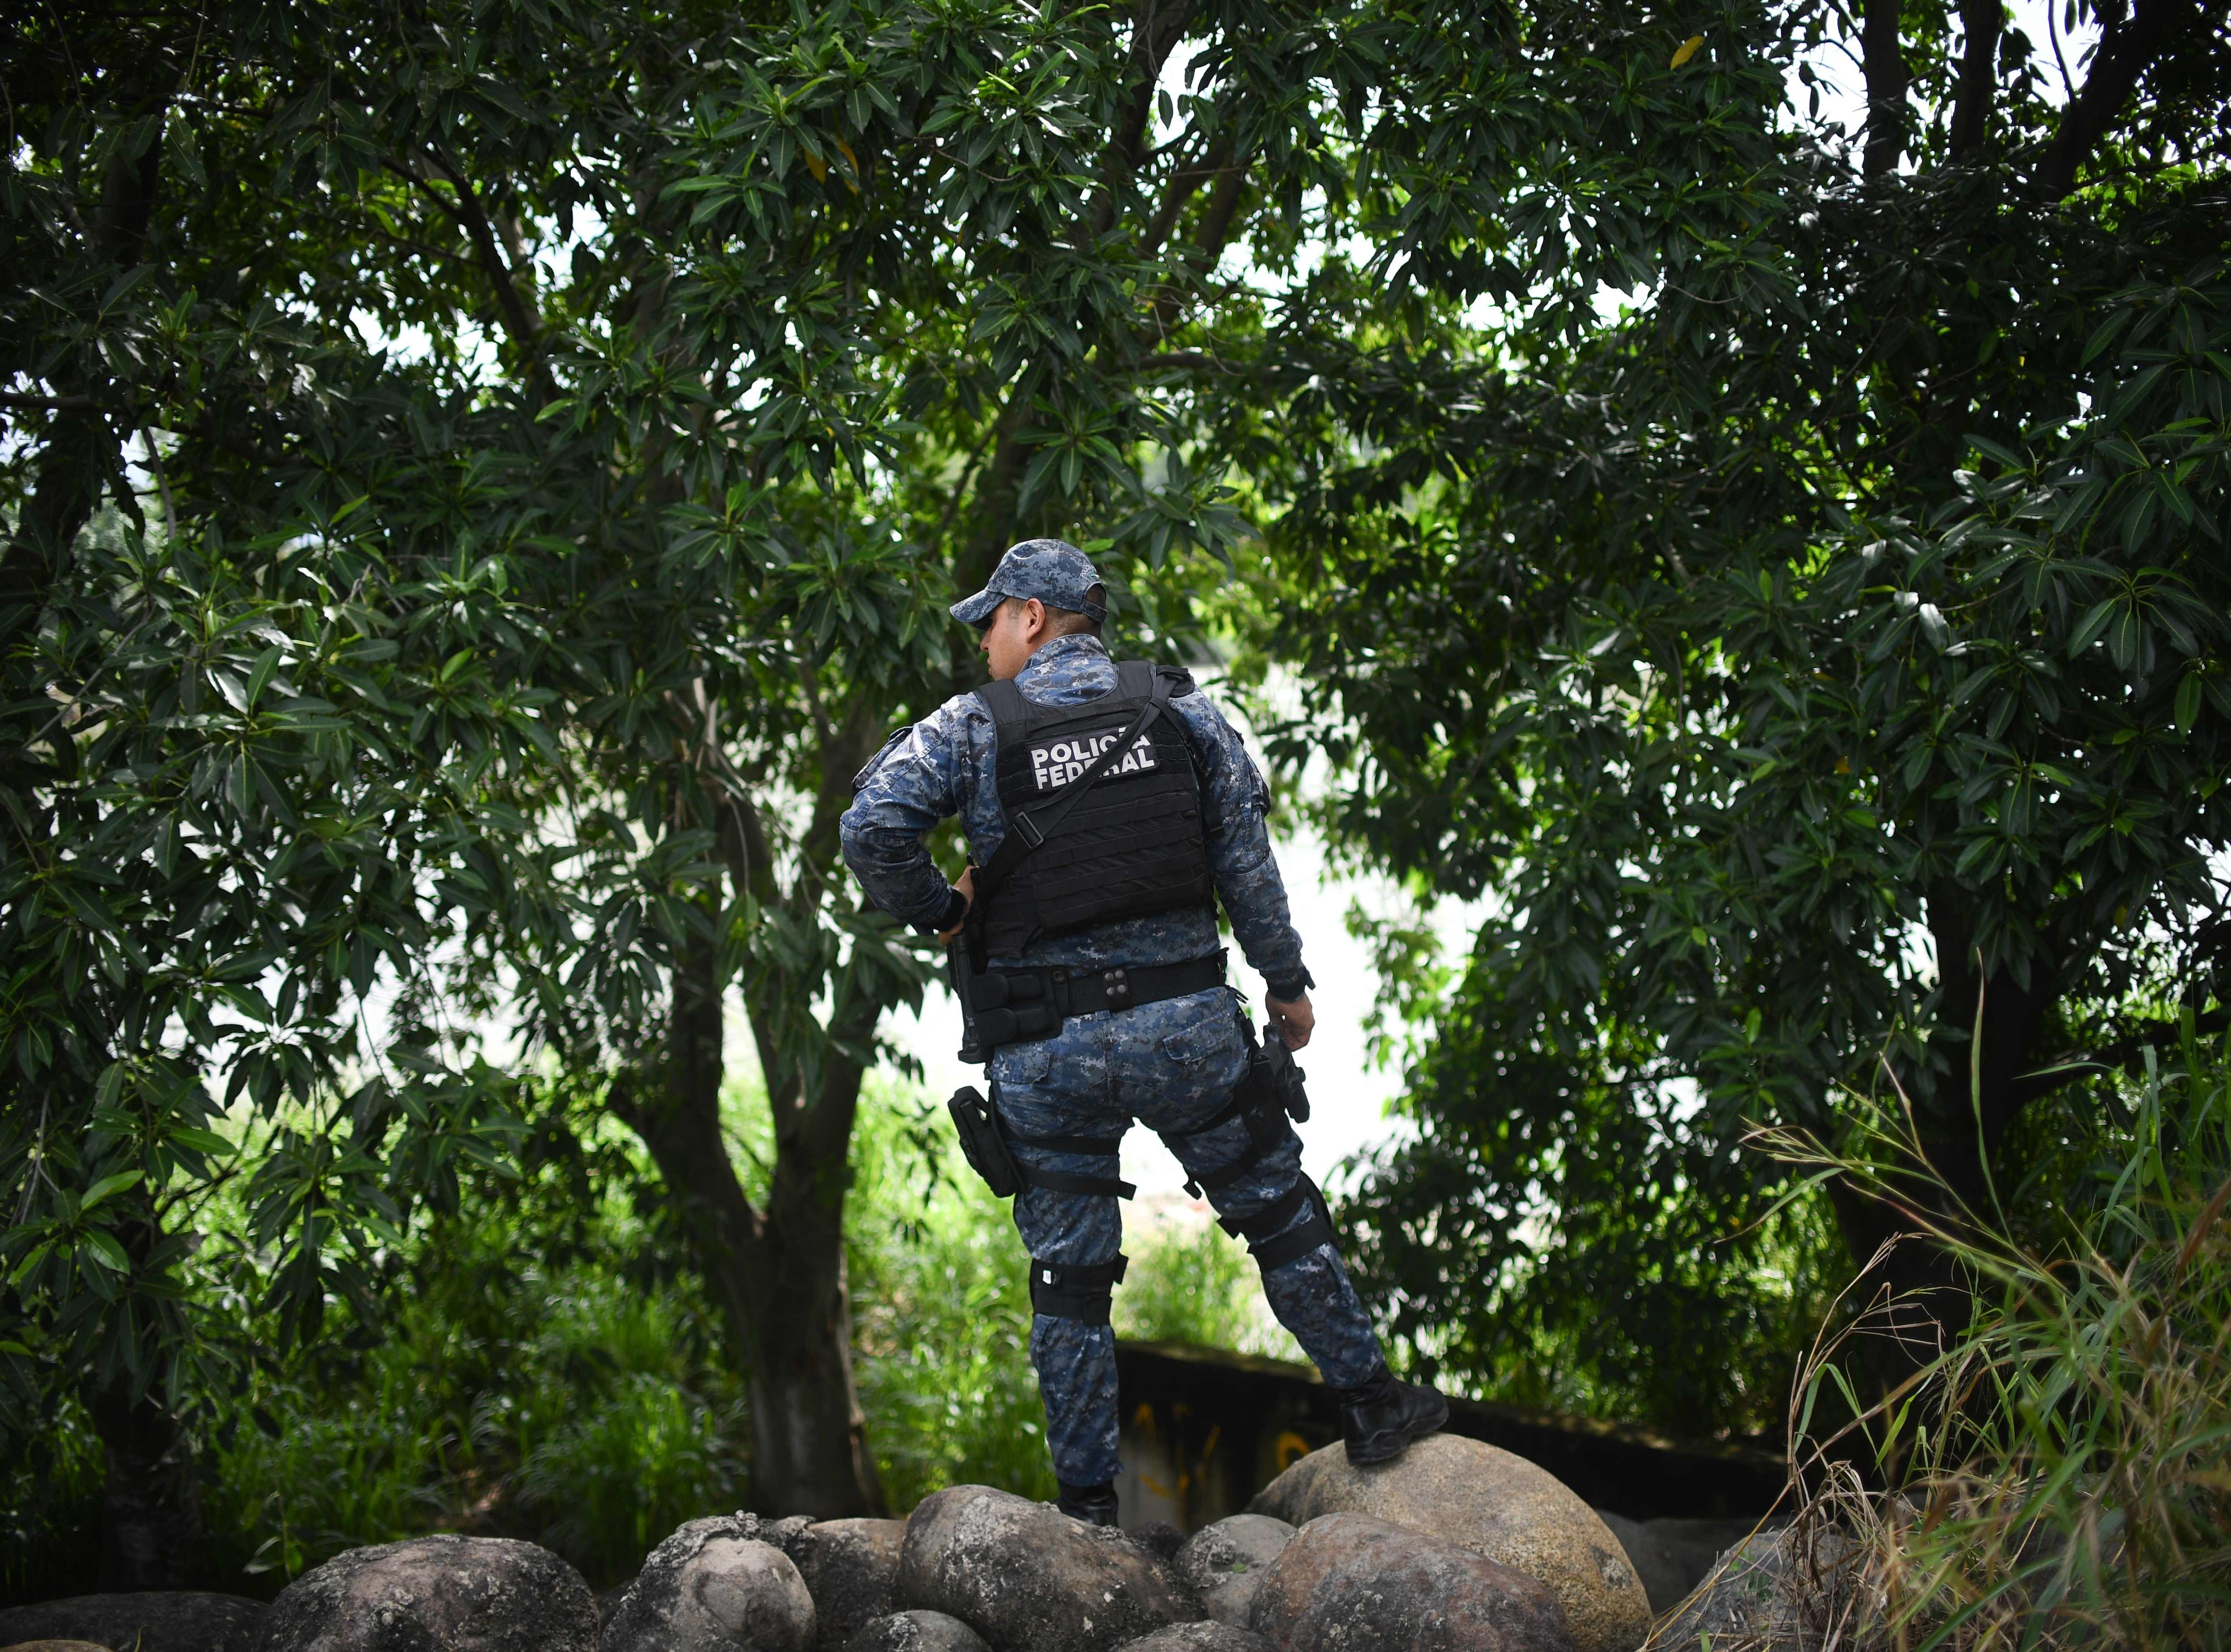 A Mexican Federal Police officer stands guard on the bank of the Suchiate River in Ciudad Hidalgo, Chiapas state, Mexico, while a caravan of Honduran migrants heading to the US tries to get to Mexican territory from Guatemala, on Oct. 20, 2018.